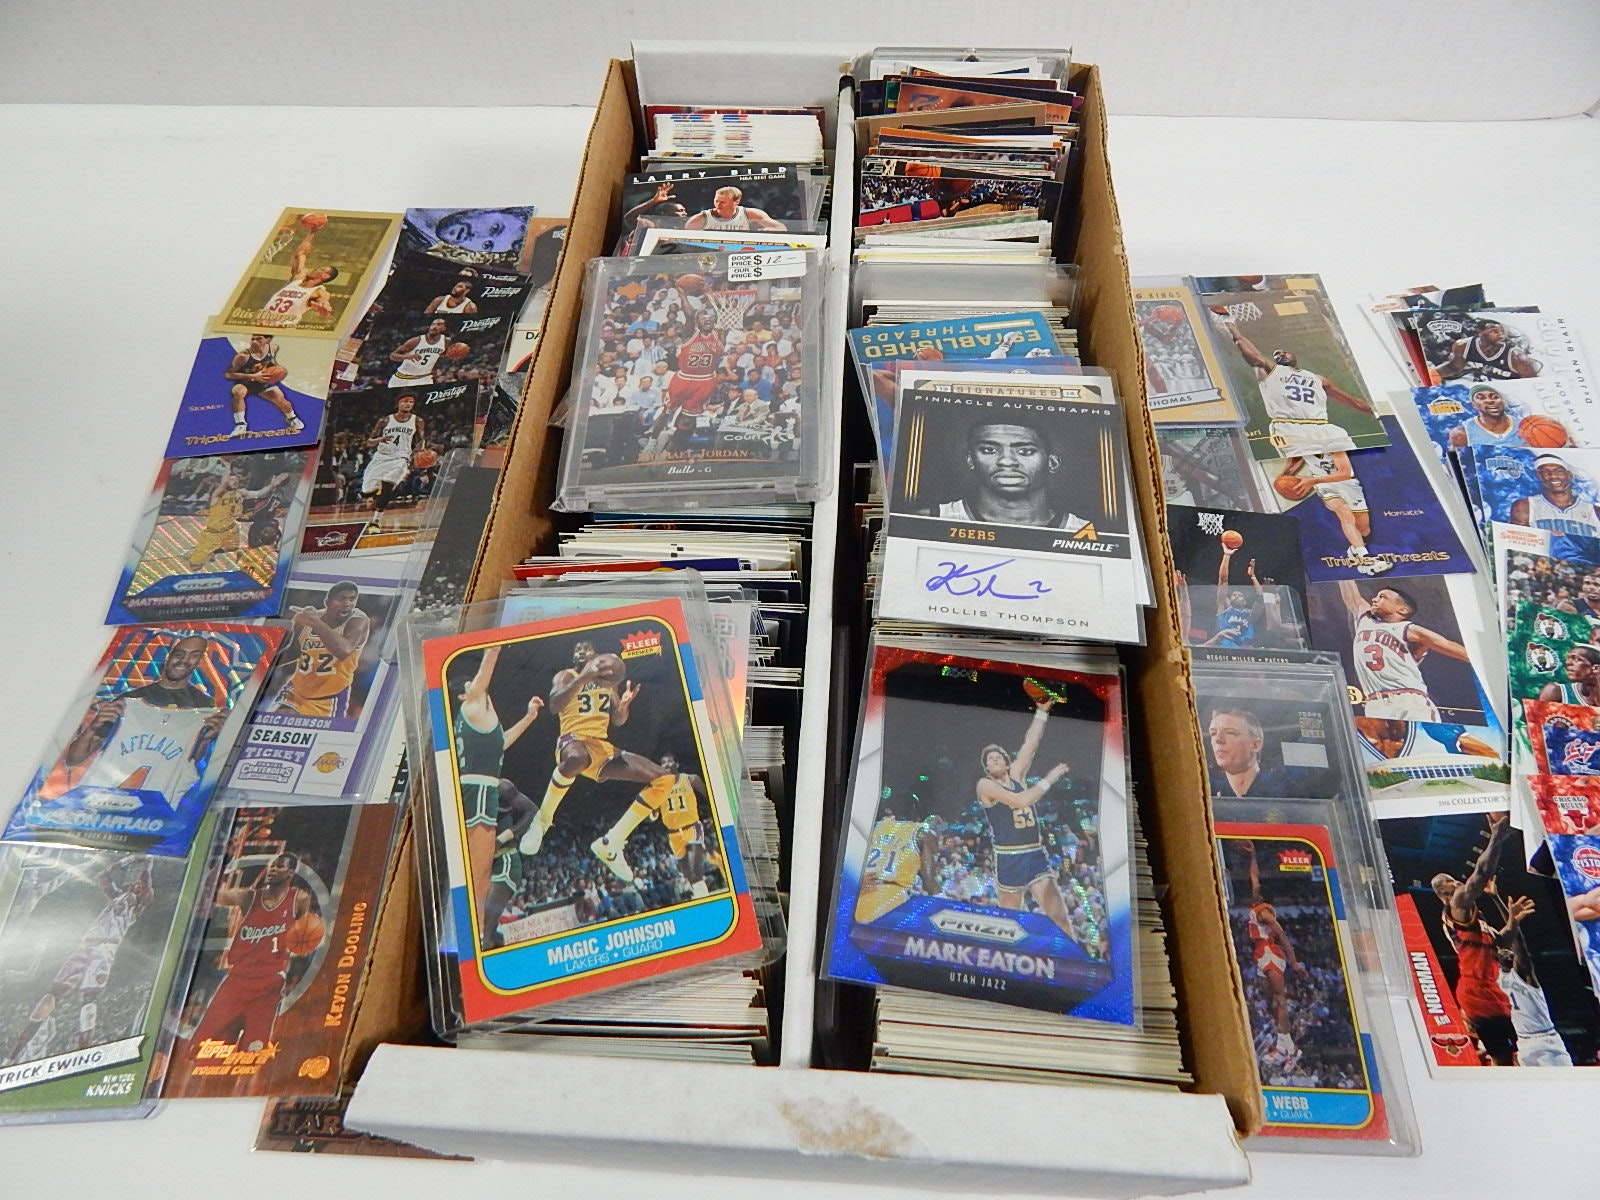 Box of Basketball Cards - Over 1500 Card Count - With Jordan, Ewing, Johnson